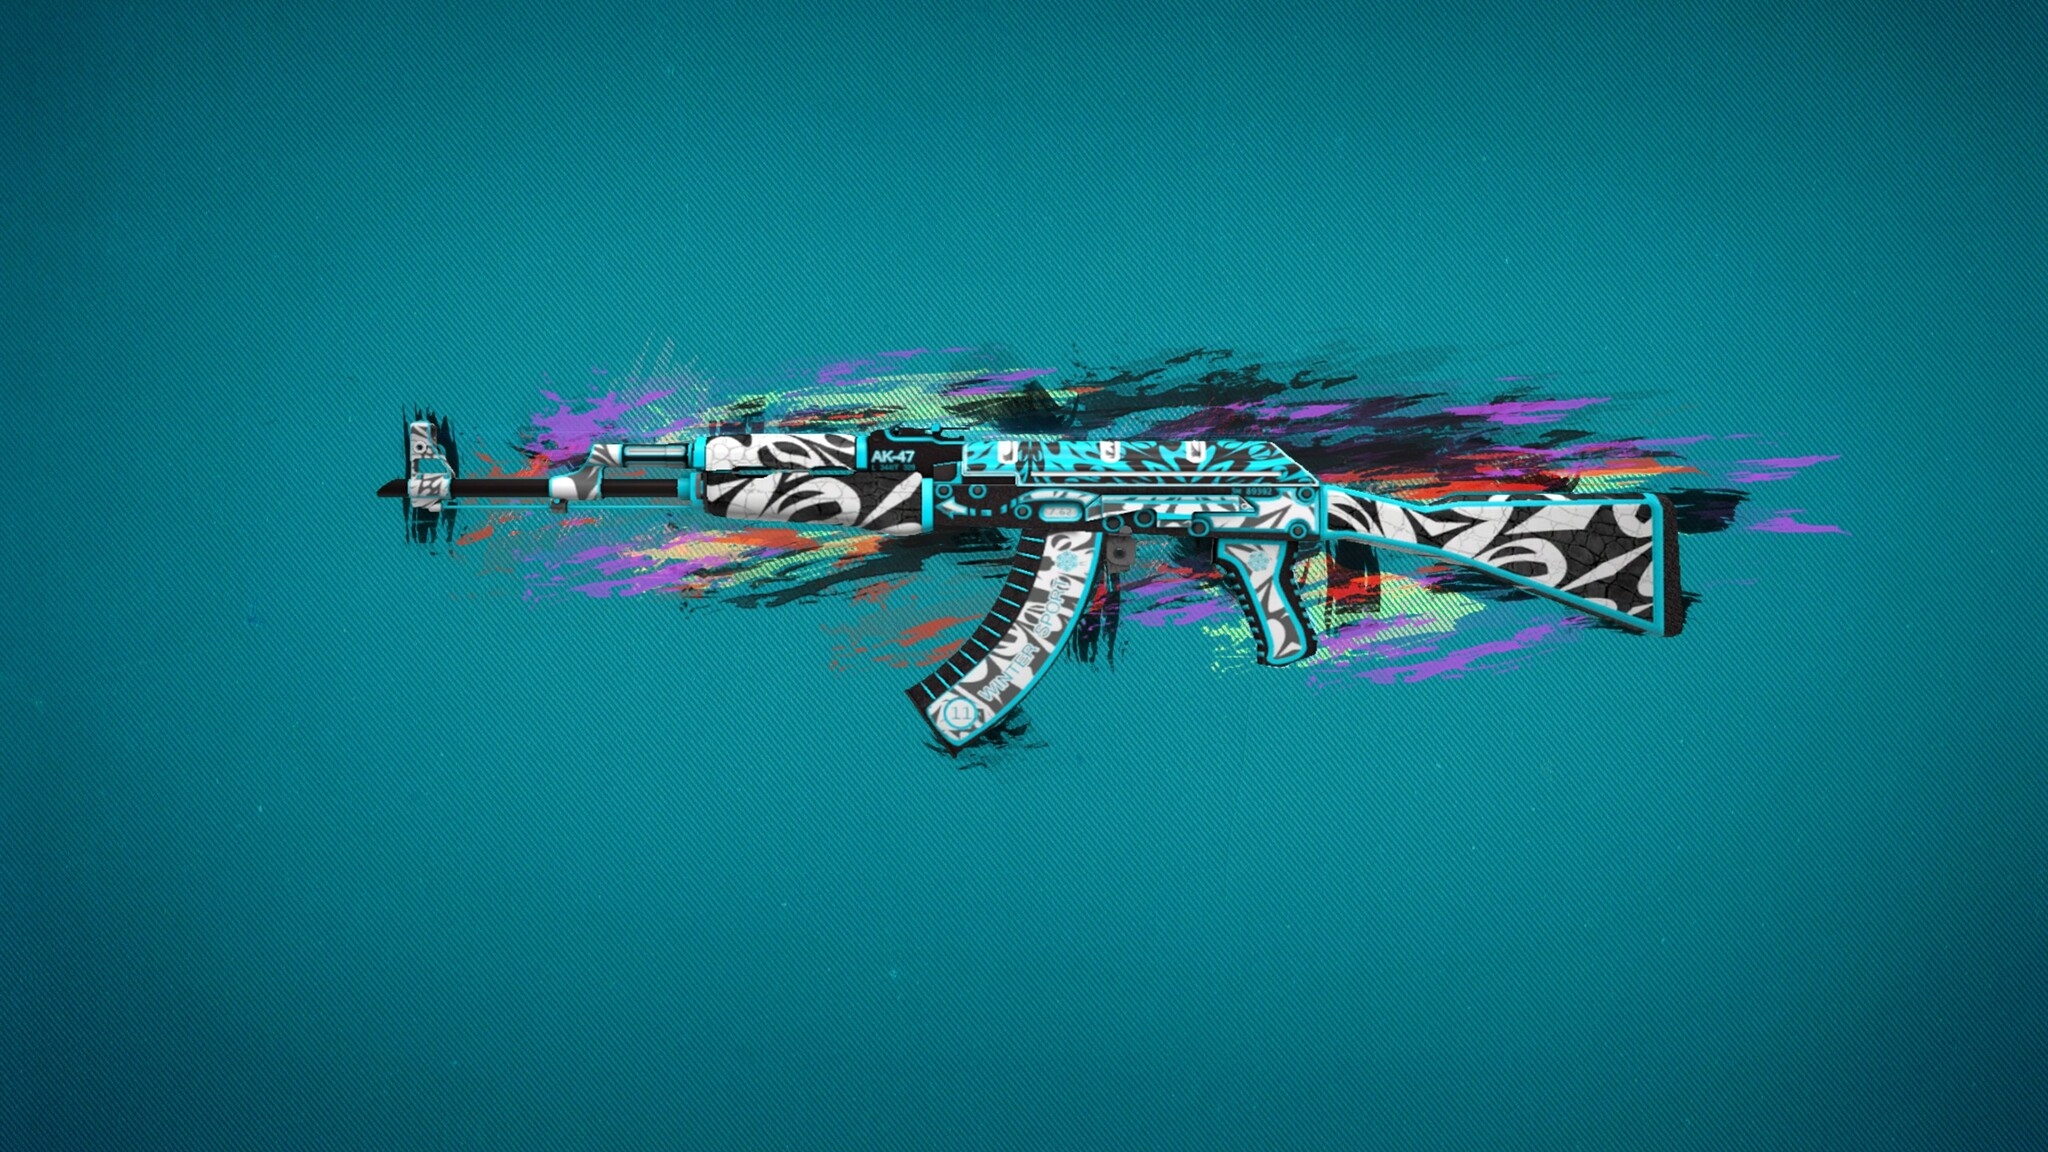 Ak47 Colorful Art Image